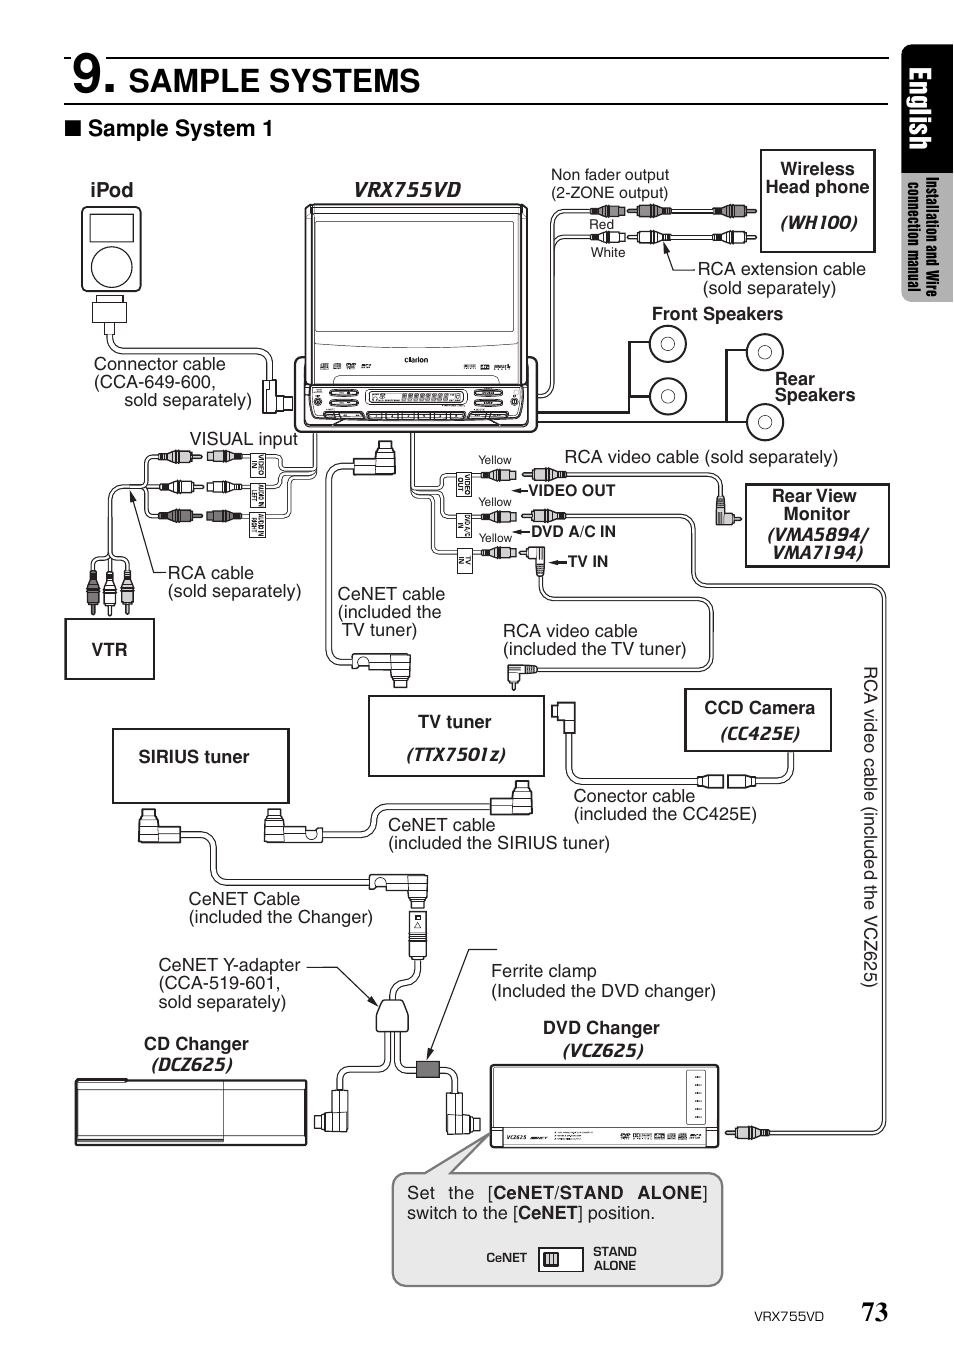 Clarion Cmd6 Wiring Diagram Electrical Comfortable Images And Design